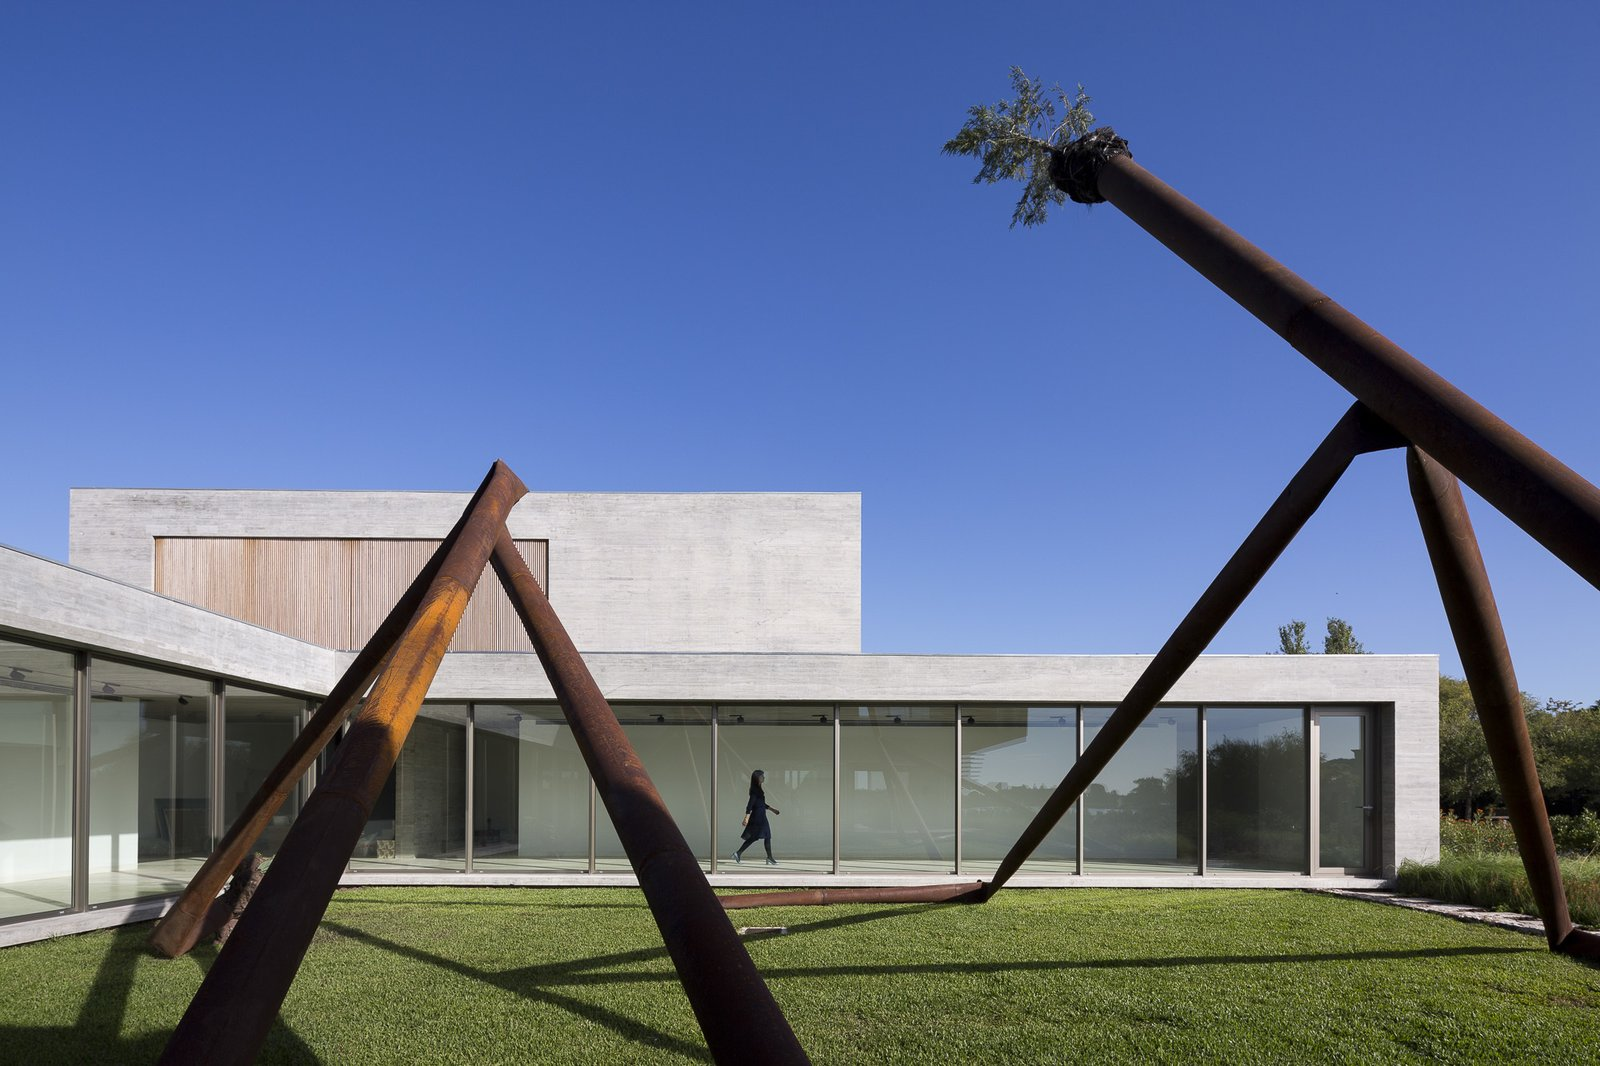 A large sculpture made of weathered metal stands in the home's central yard.